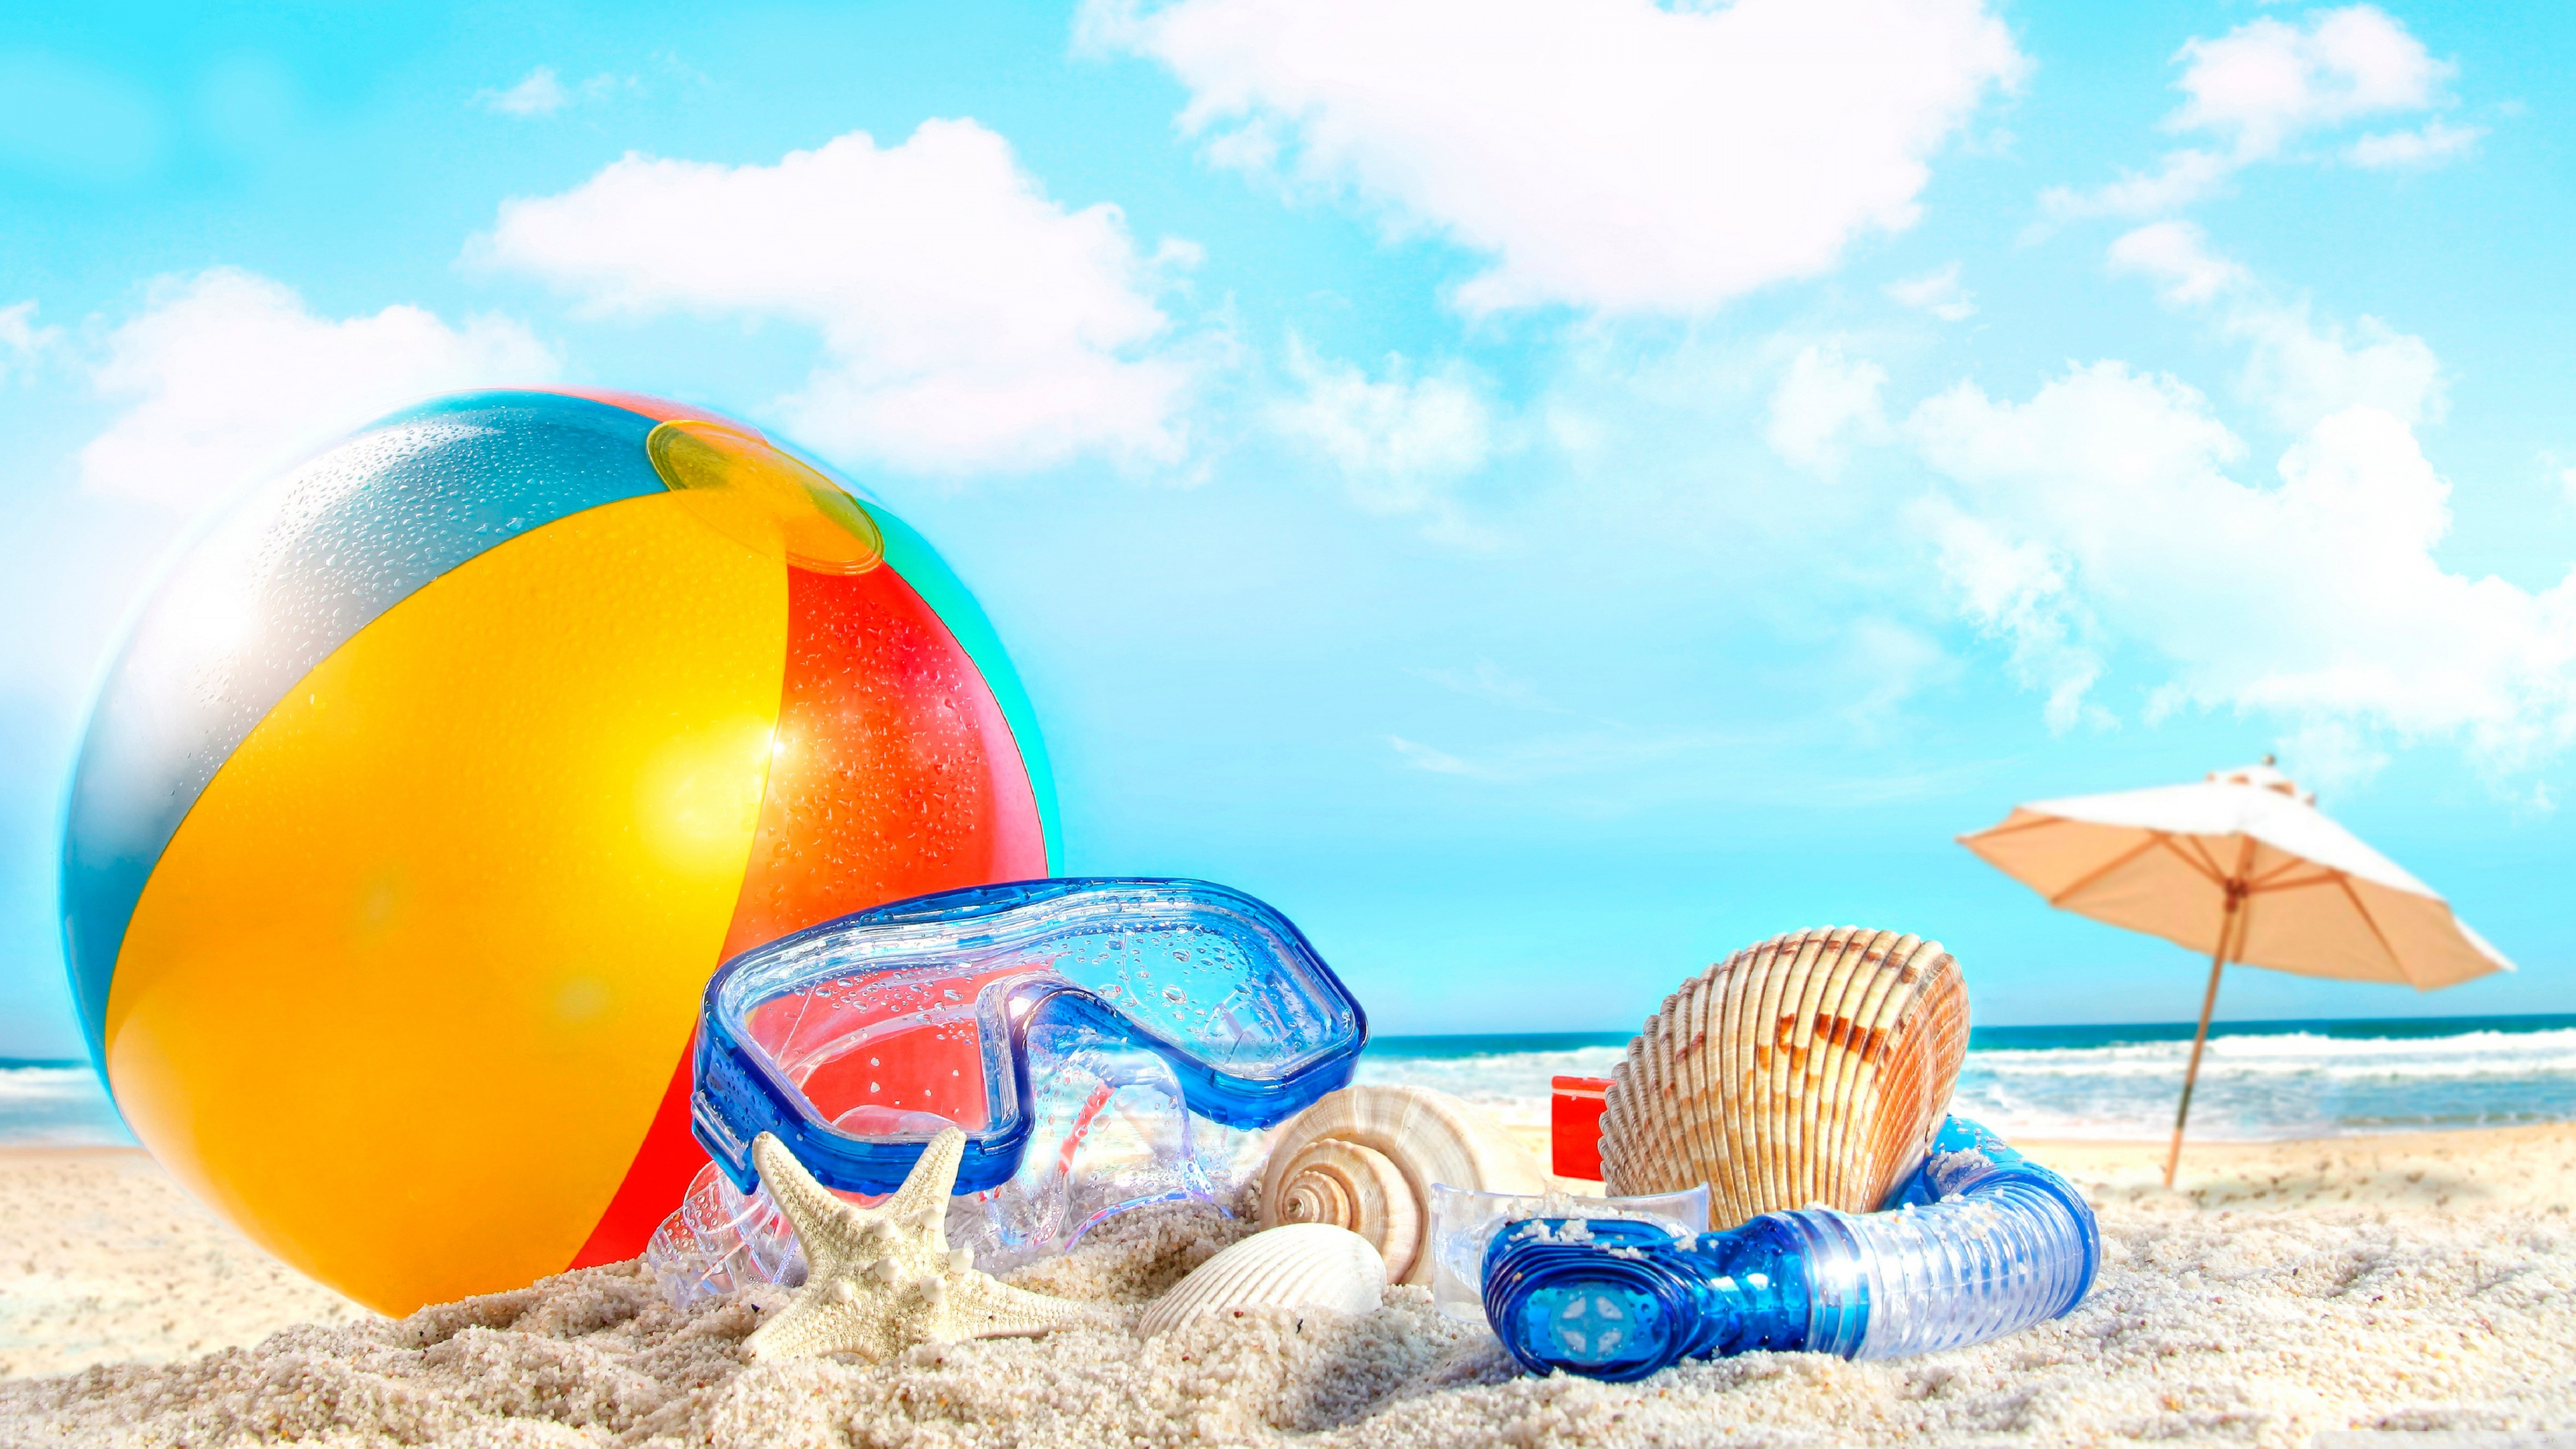 Summer vacation at sea wallpapers and images   wallpapers pictures 3840x2160